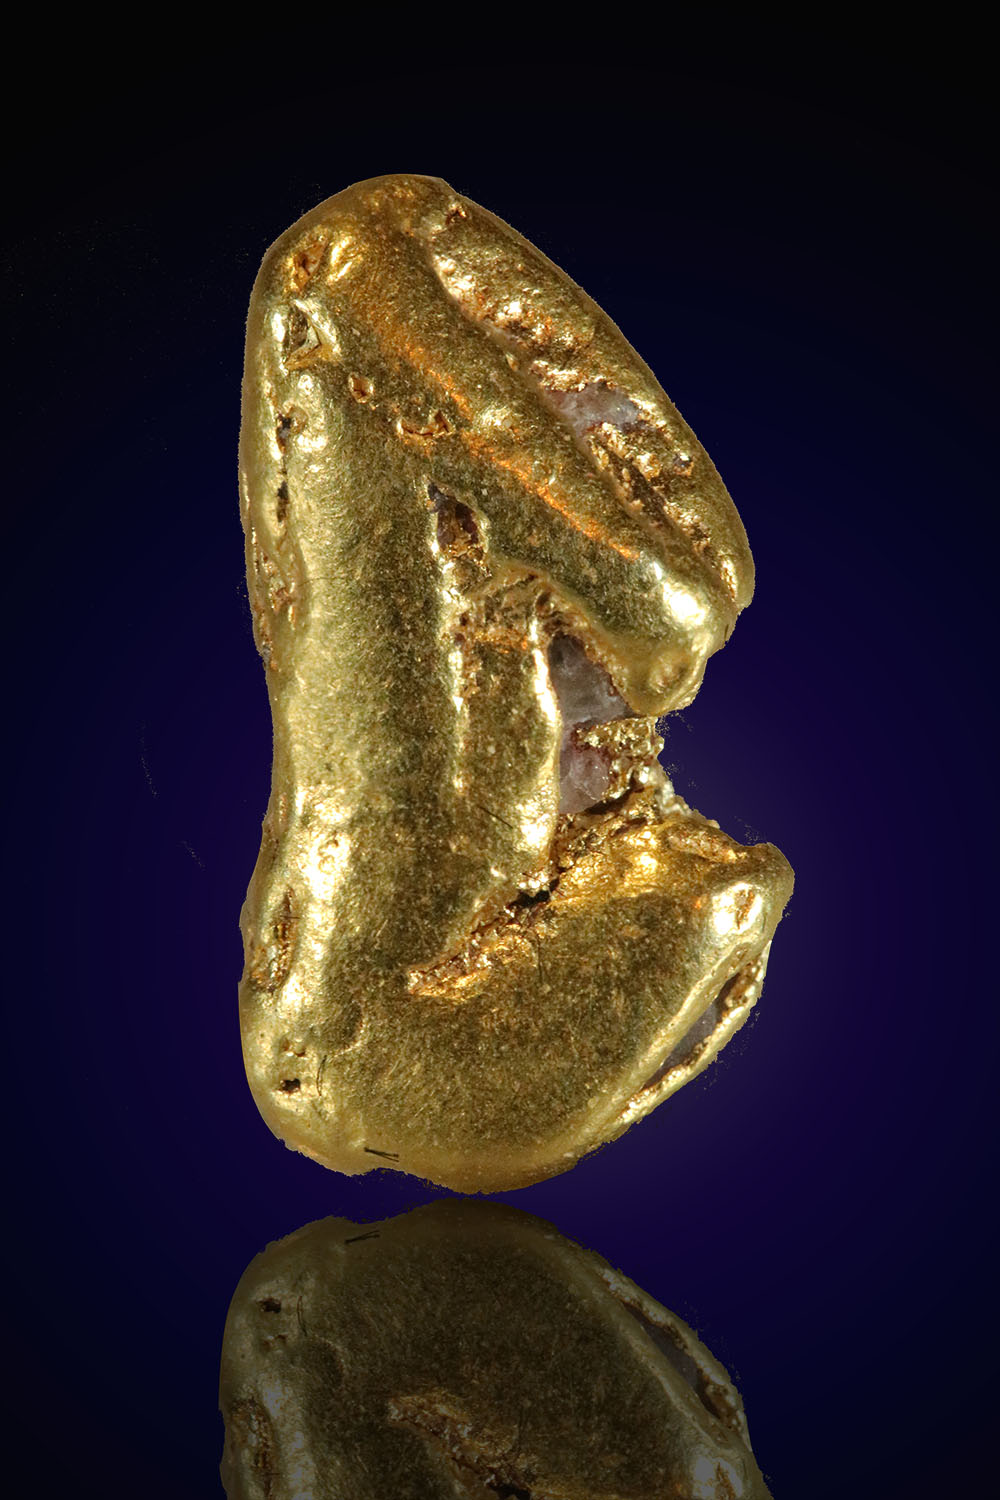 Smooth and Oblong Alaskan Gold Nugget